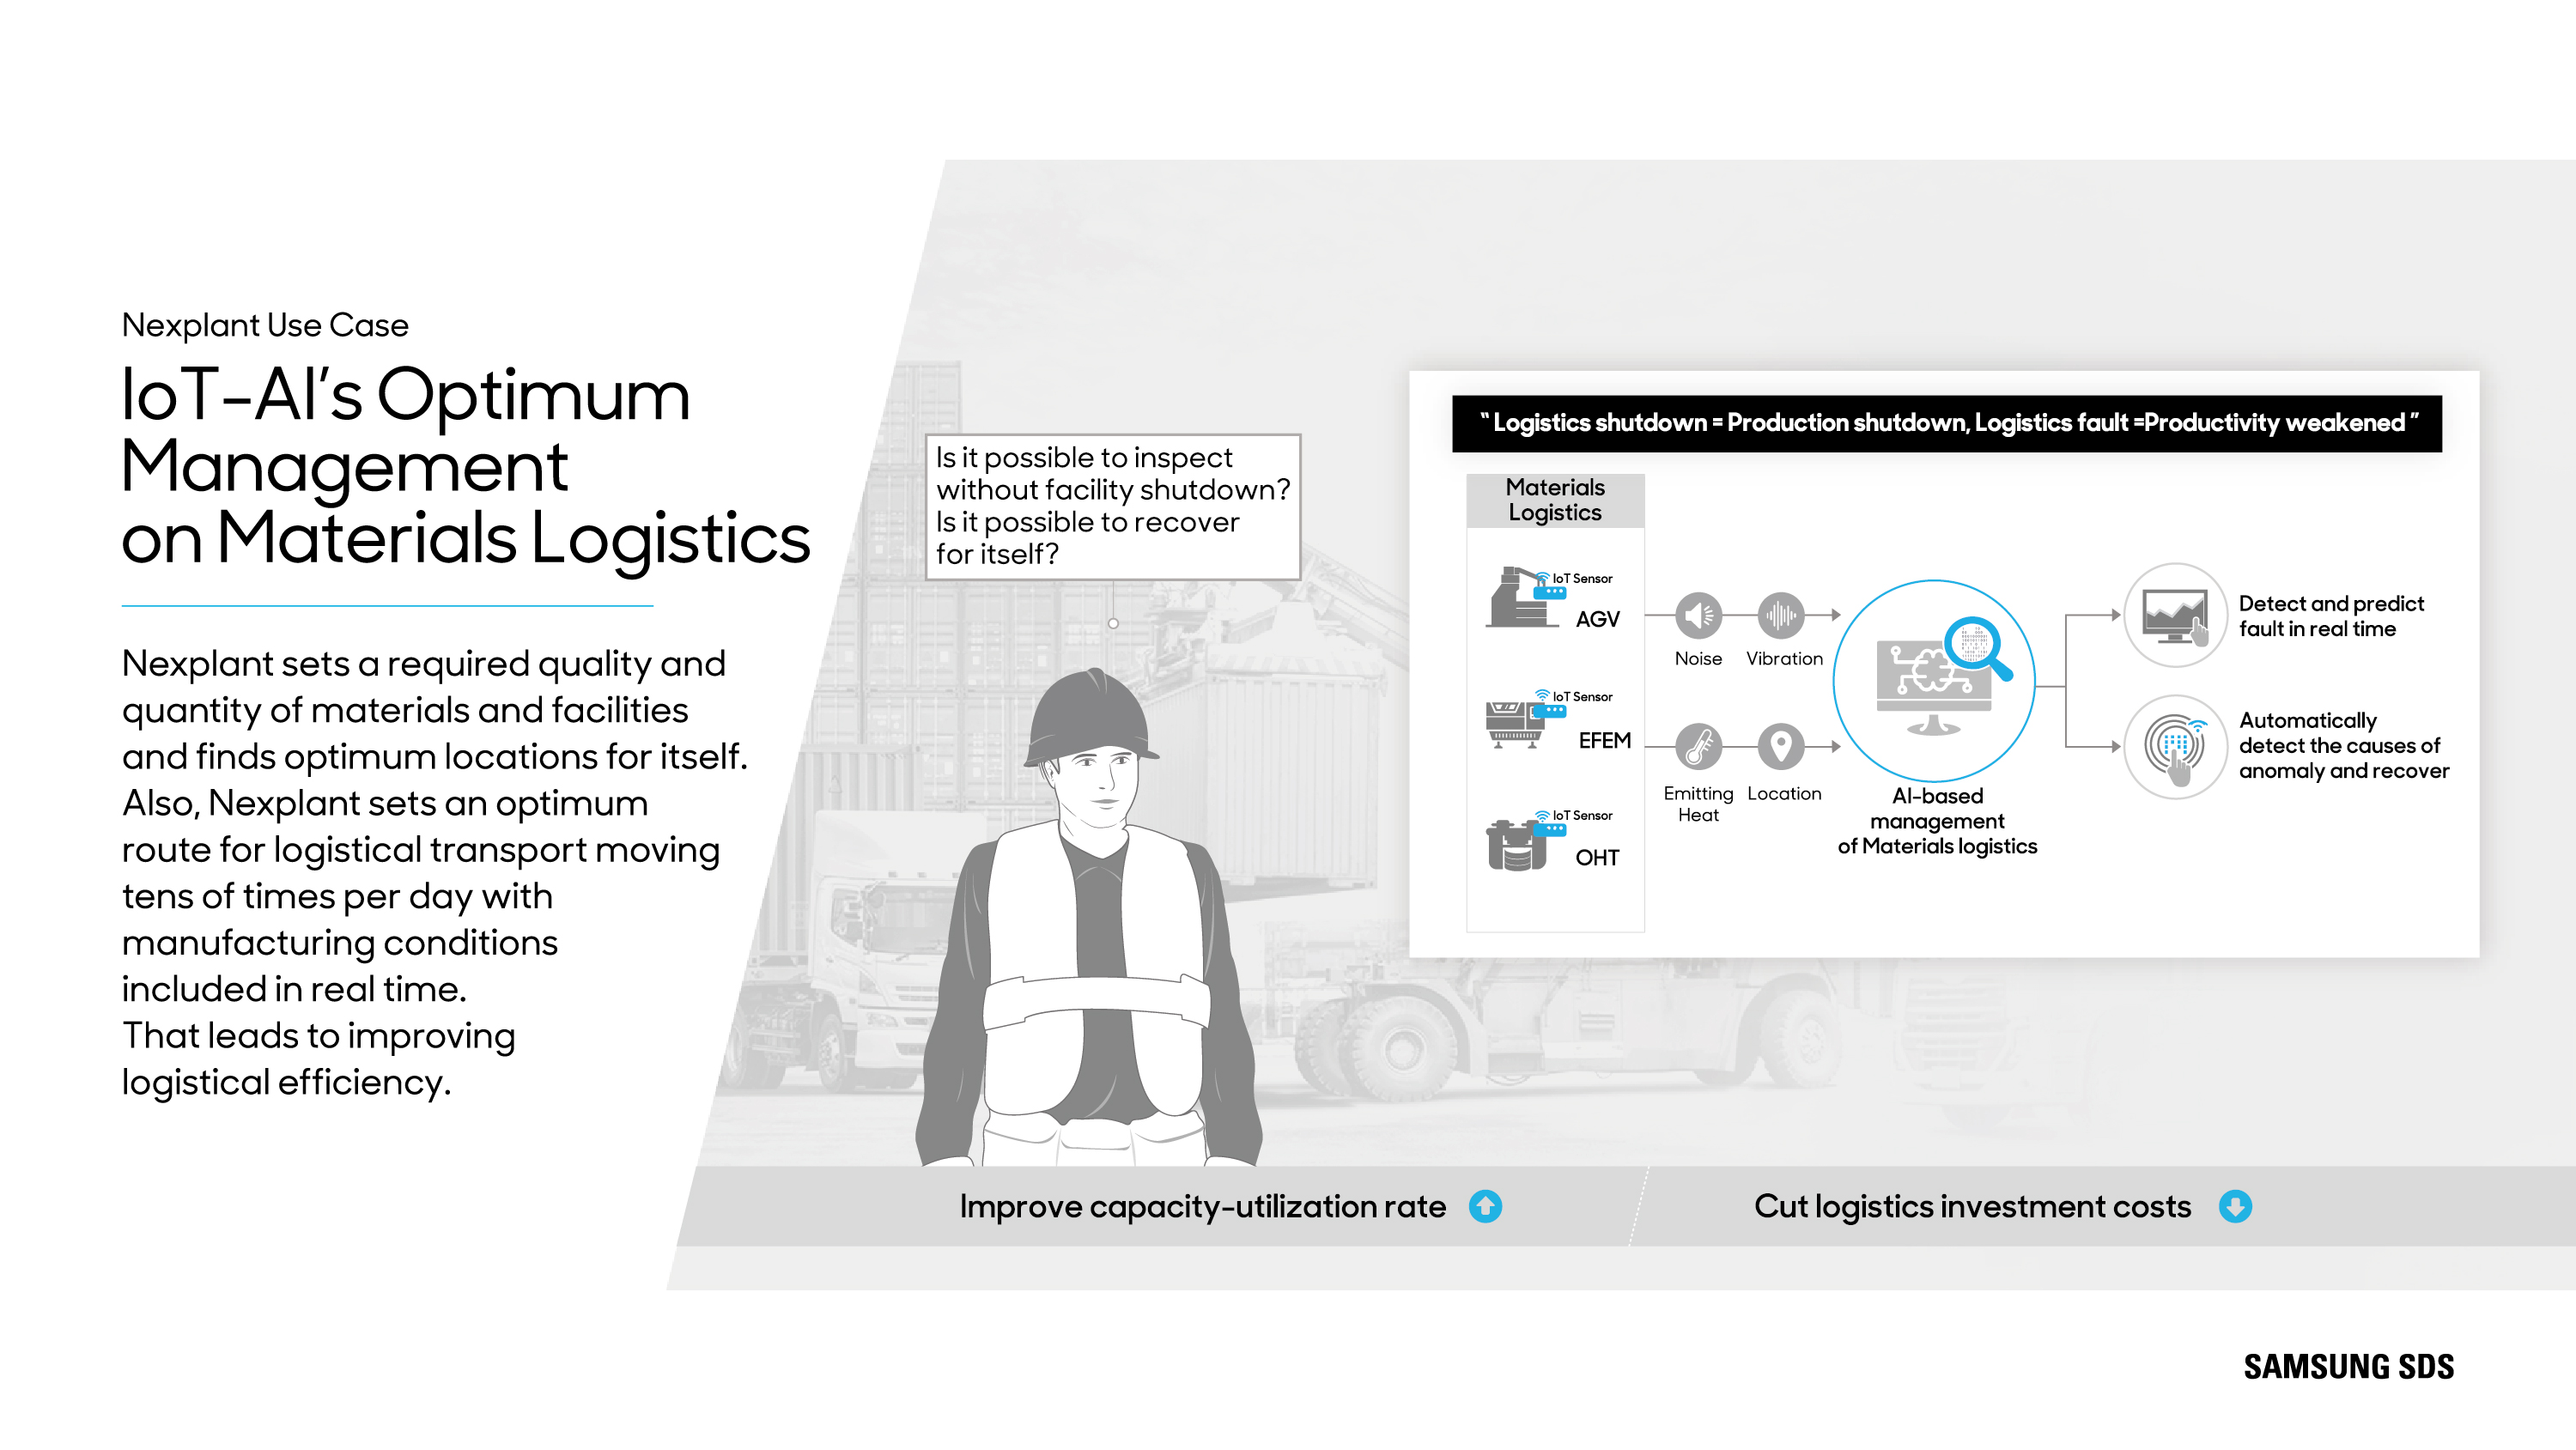 Manage manufacturing logistics quantity and transport by IoT and AI technology.